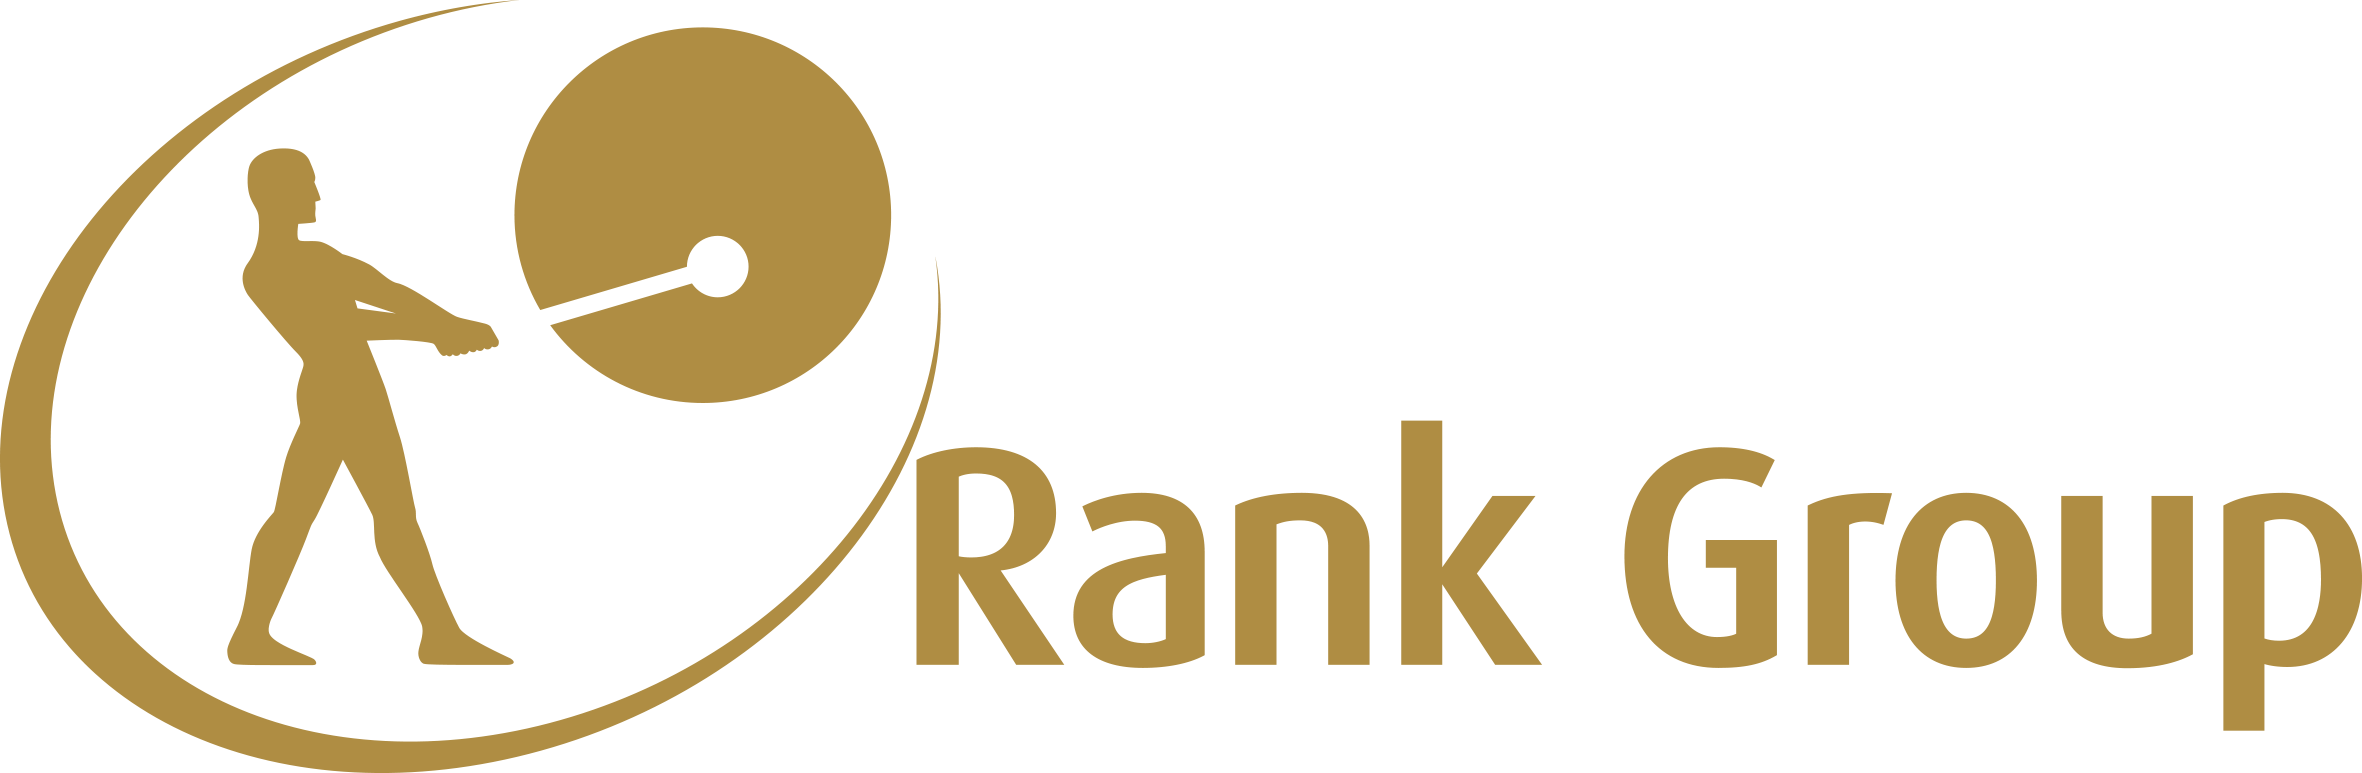 Rank Group Announce Change In Directorate